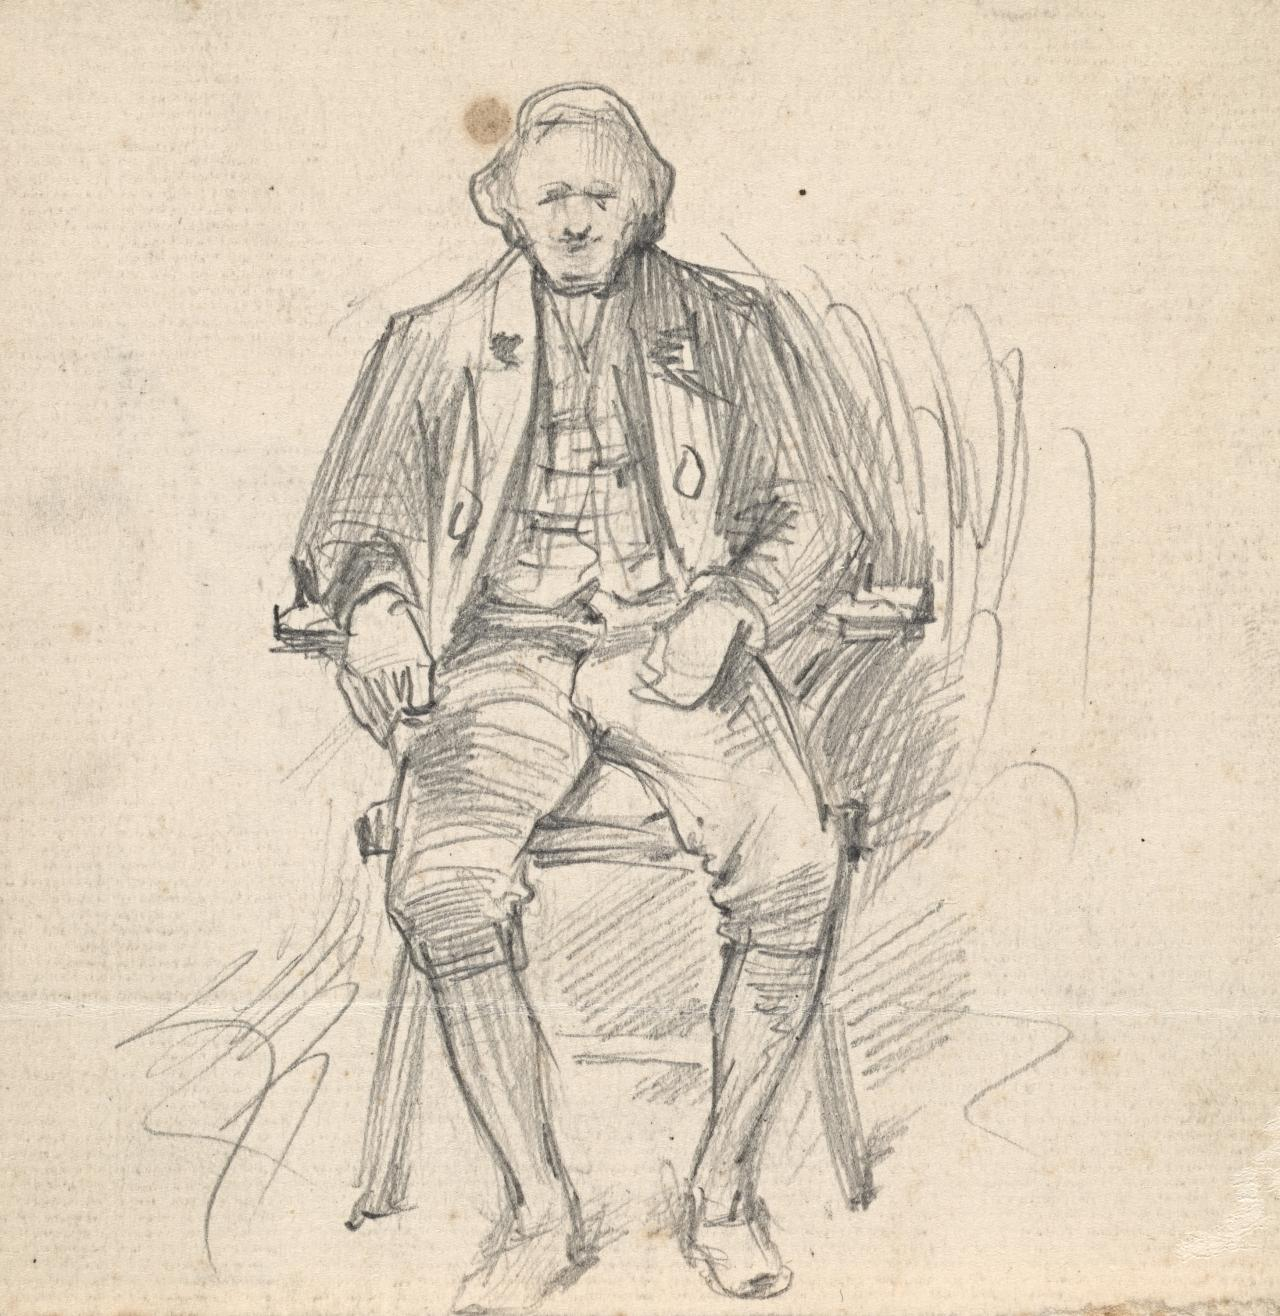 Study of a seated man in period costume